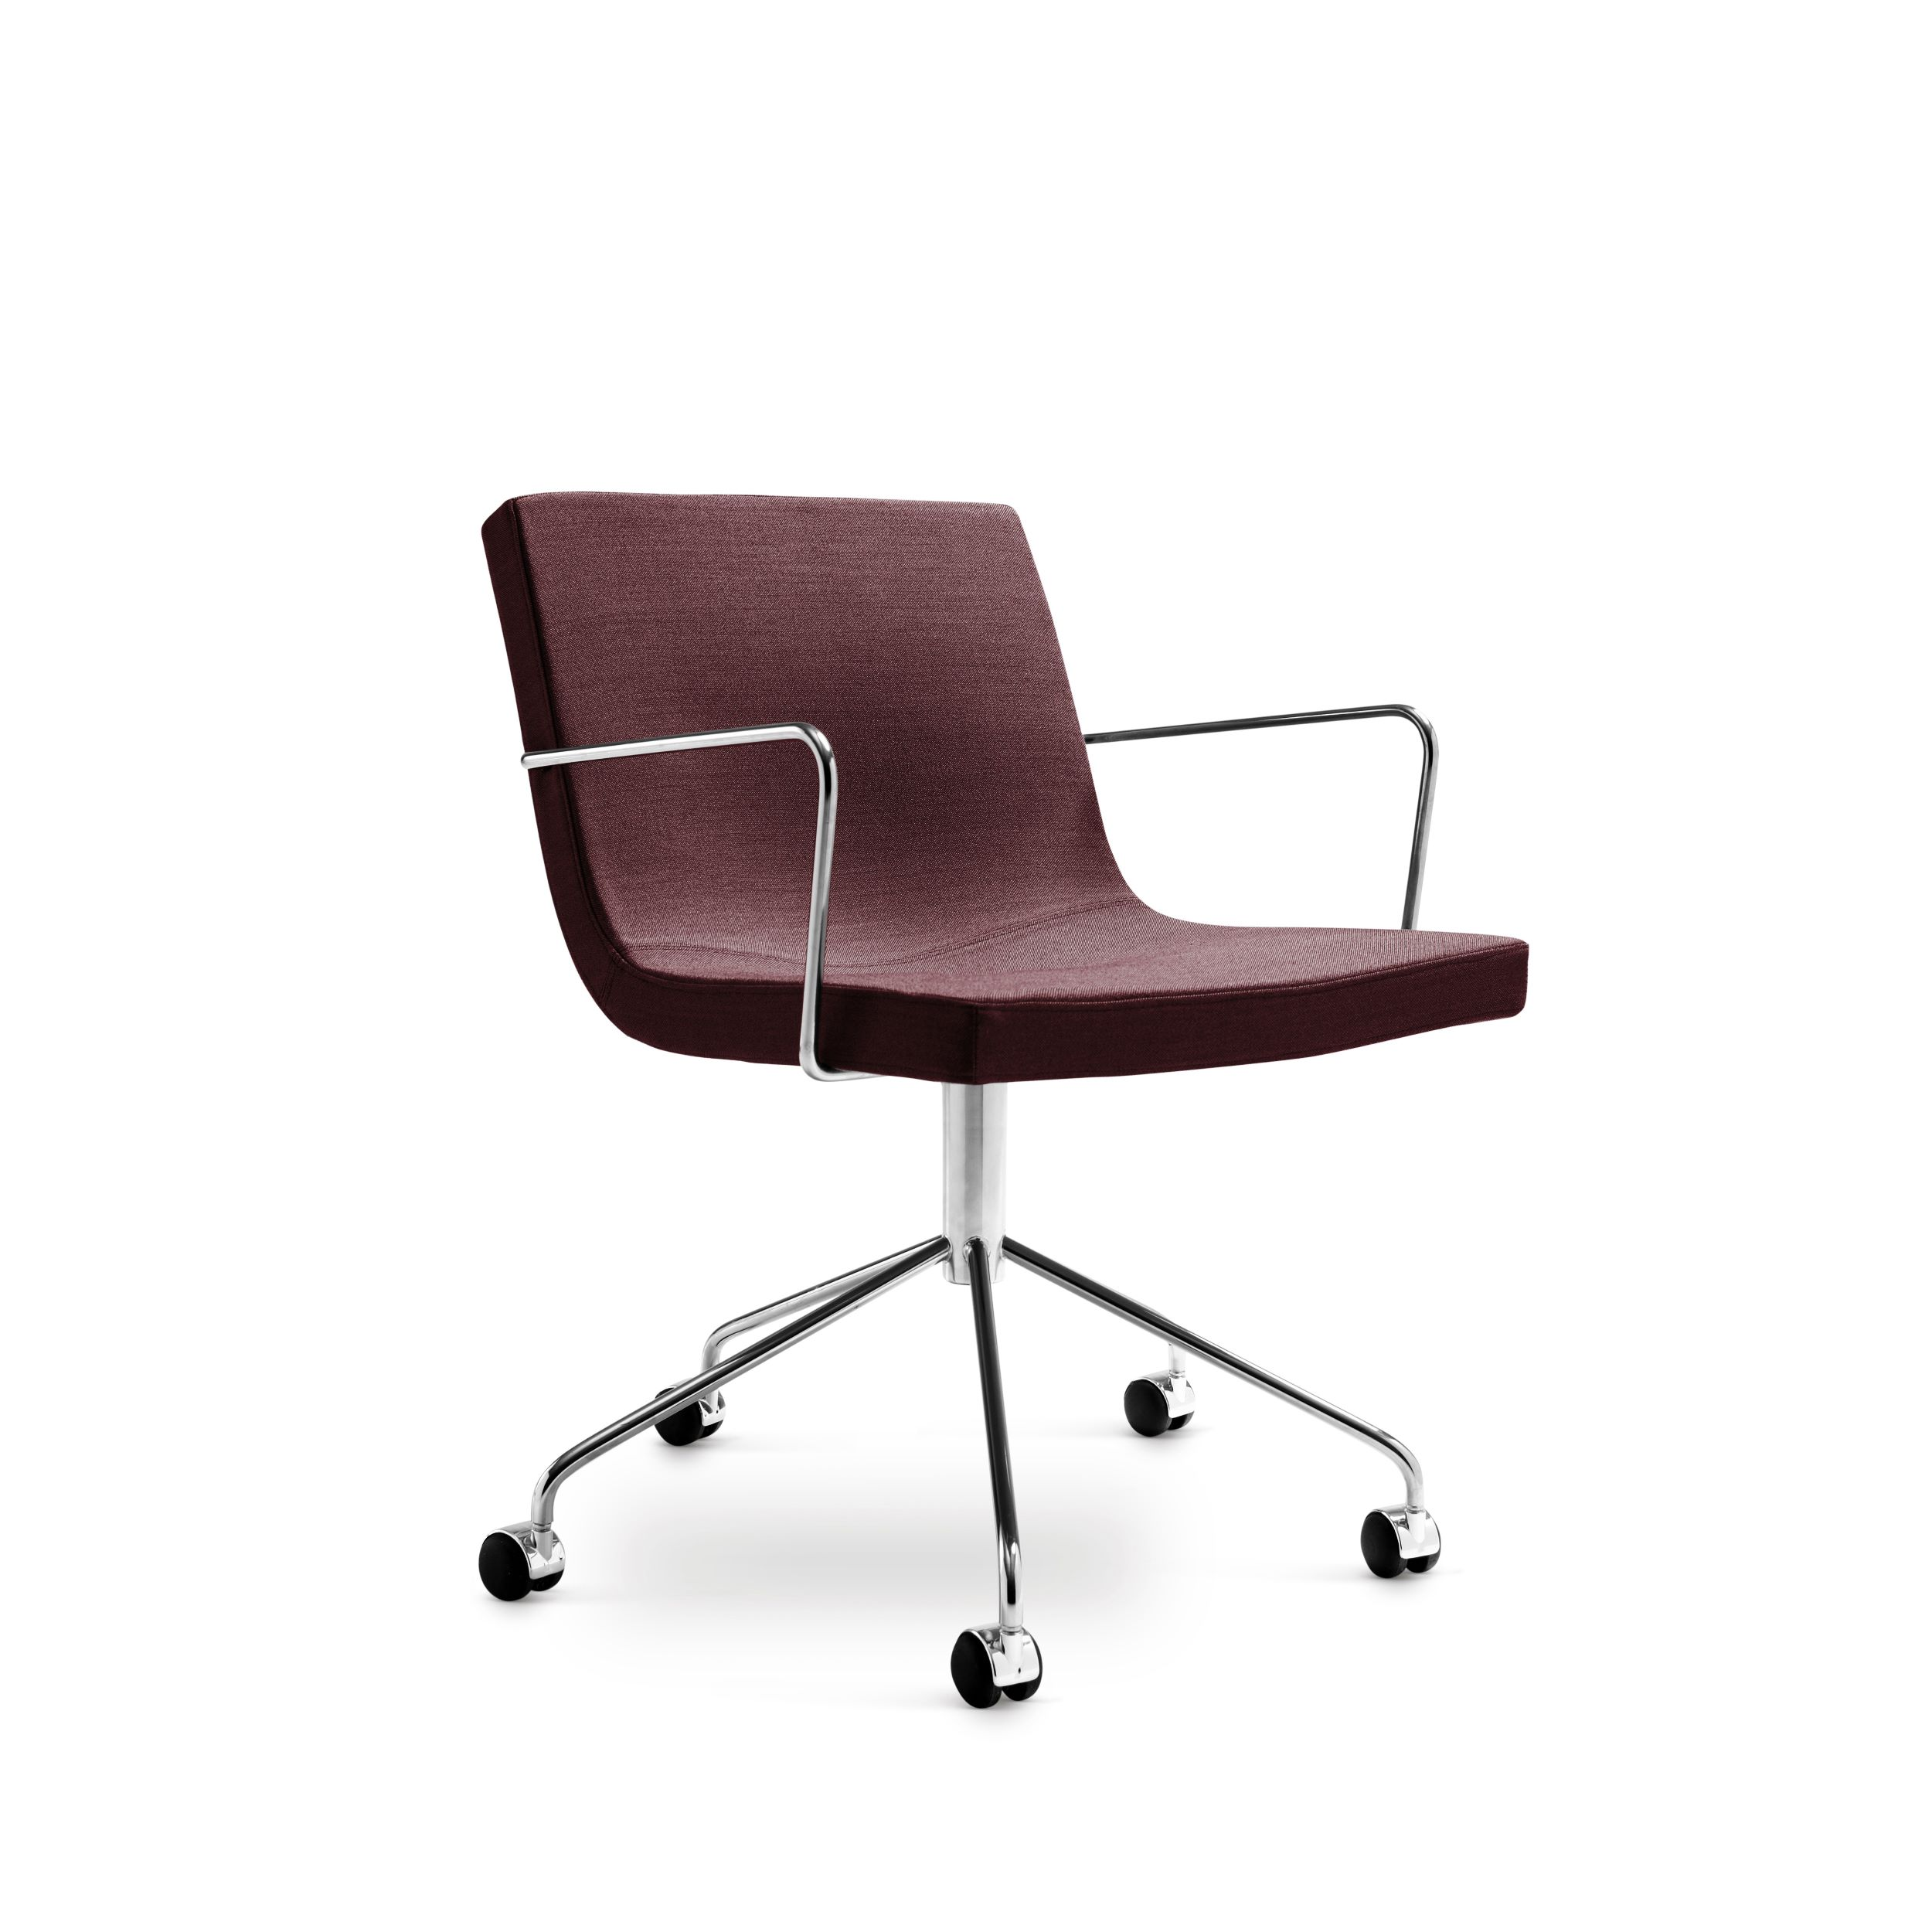 Bond Armchair With 5 Wheels Design By Jean Marie